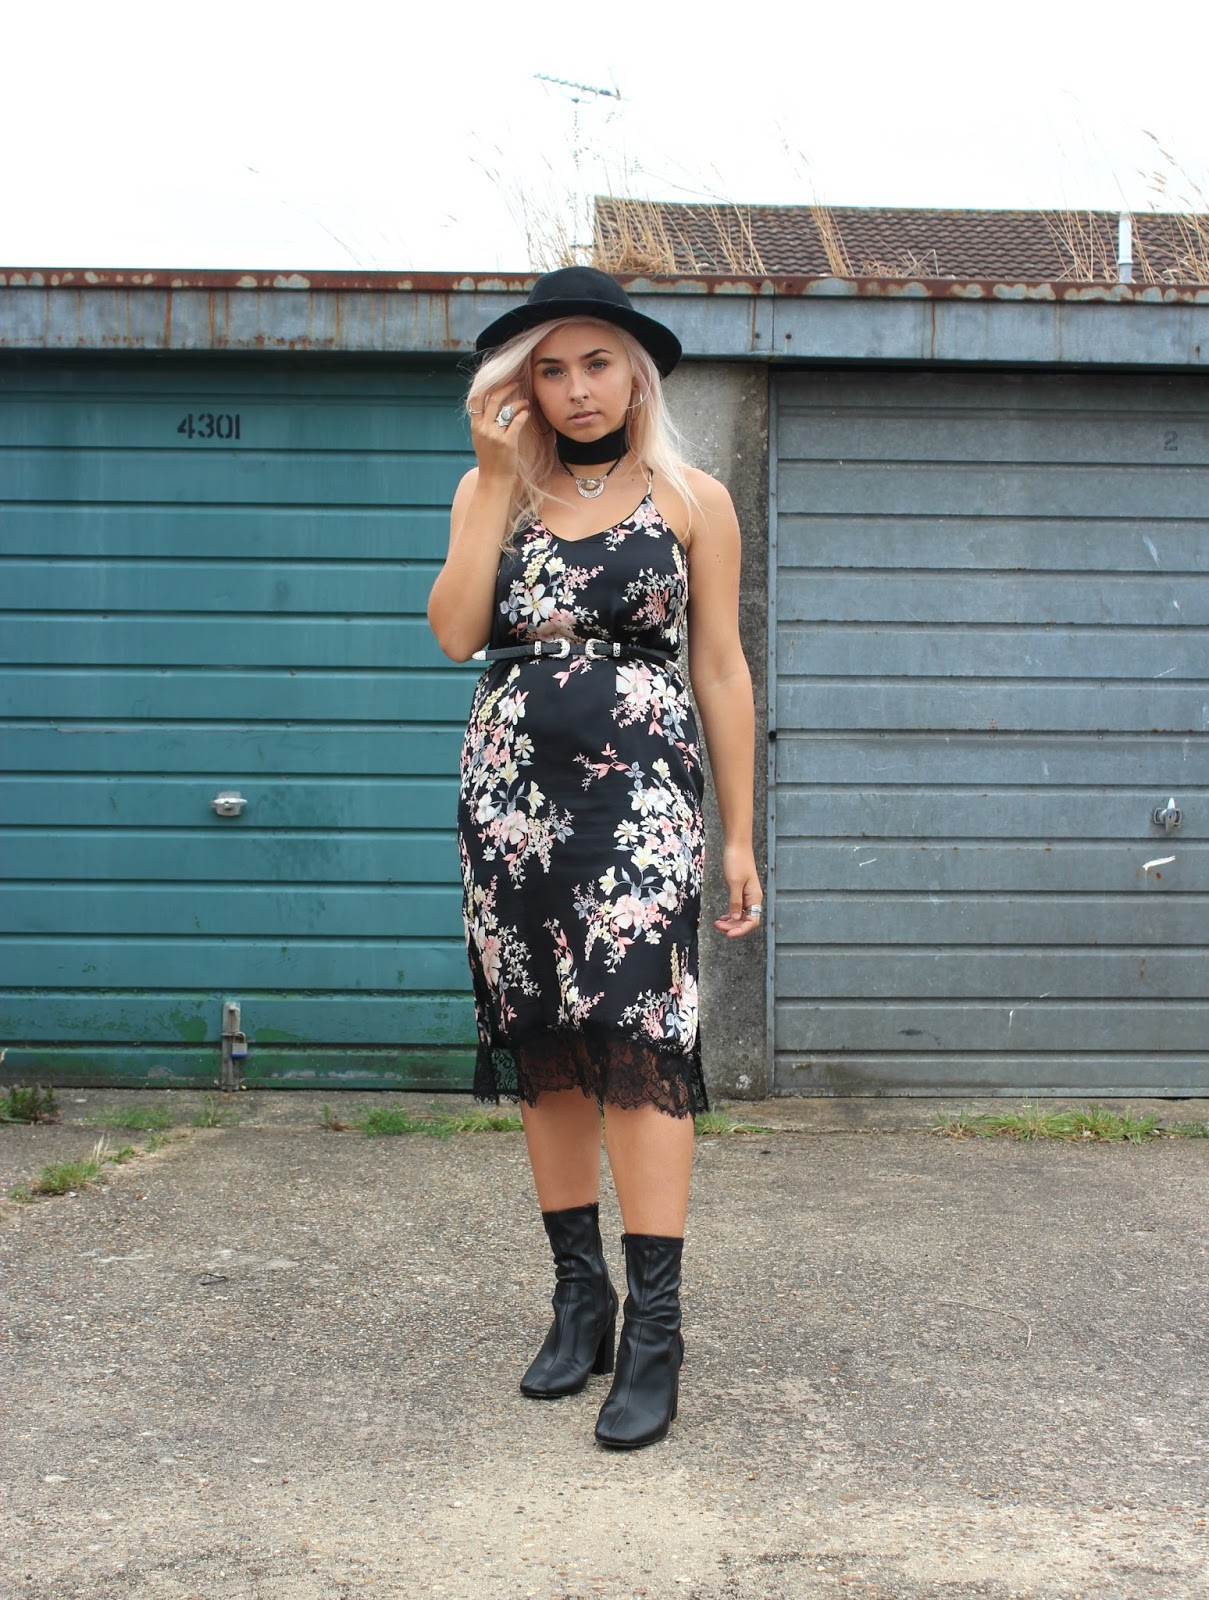 Floral Slip Dress from Primark